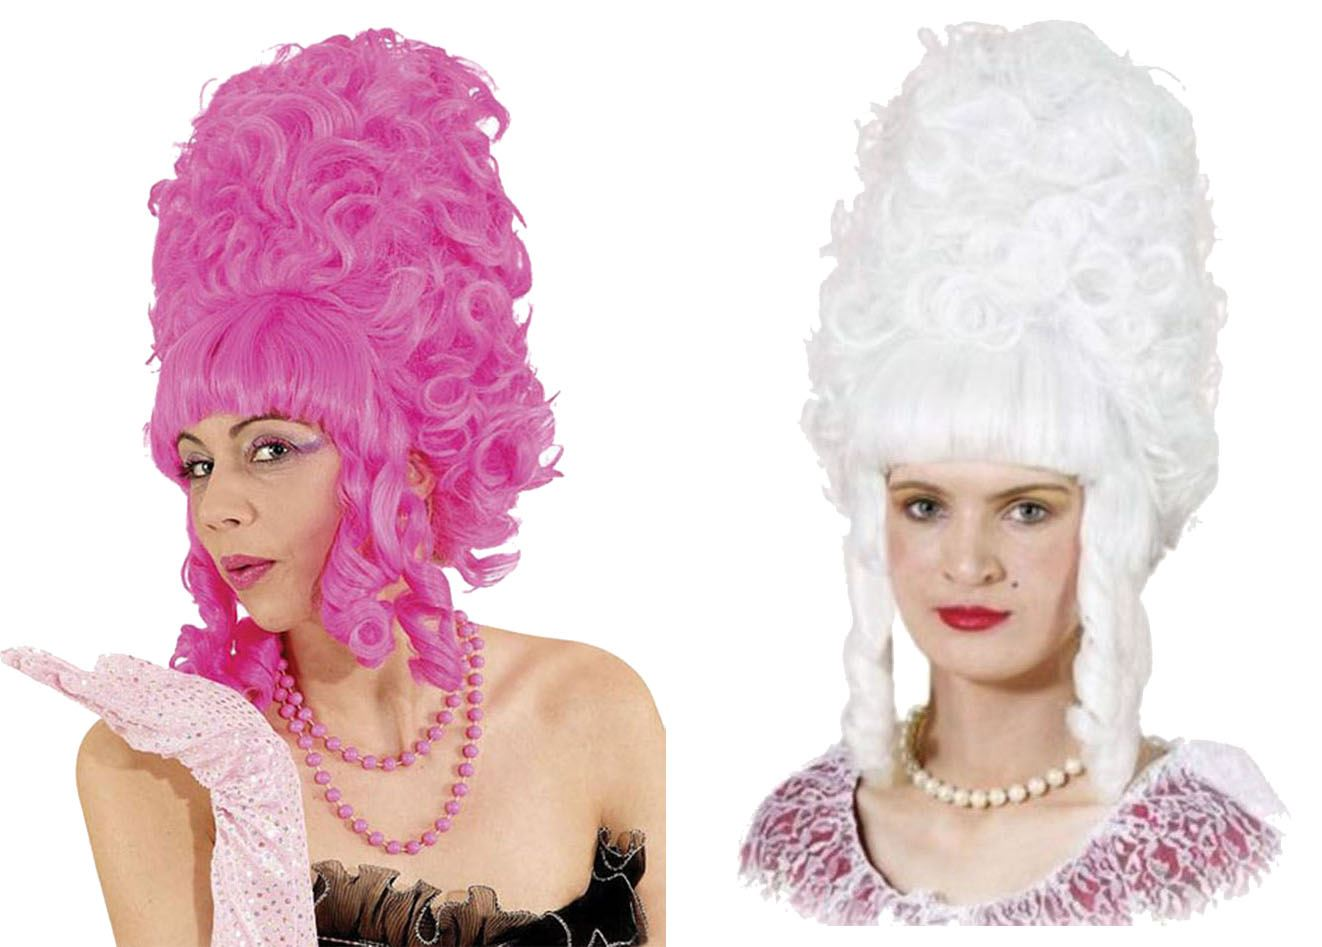 Details about Womens 18th Century Panto Dame Ugly Sisters Pompadour Fancy  Dress Beehive Wigs 5ac11fe546